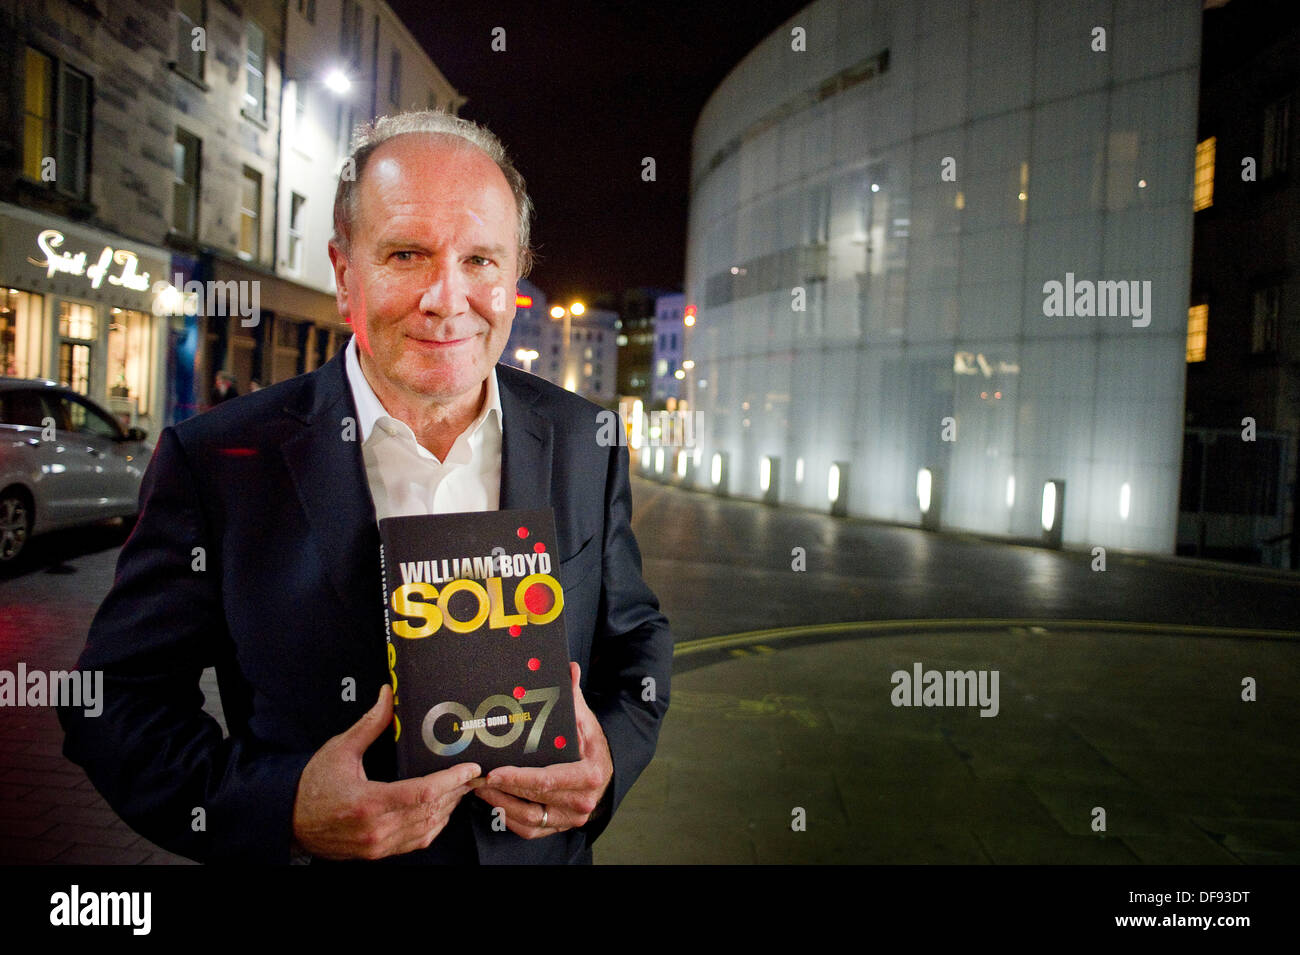 Edinburgh, UK. 30th Sept, 2013. William Boyd author with his new James Bond novel Solo at the Royal Lyceum Theatre in Edinburgh to discuss the book. All pictures must be credited to Steven Scott Taylor/ Alamy Live News - Stock Image